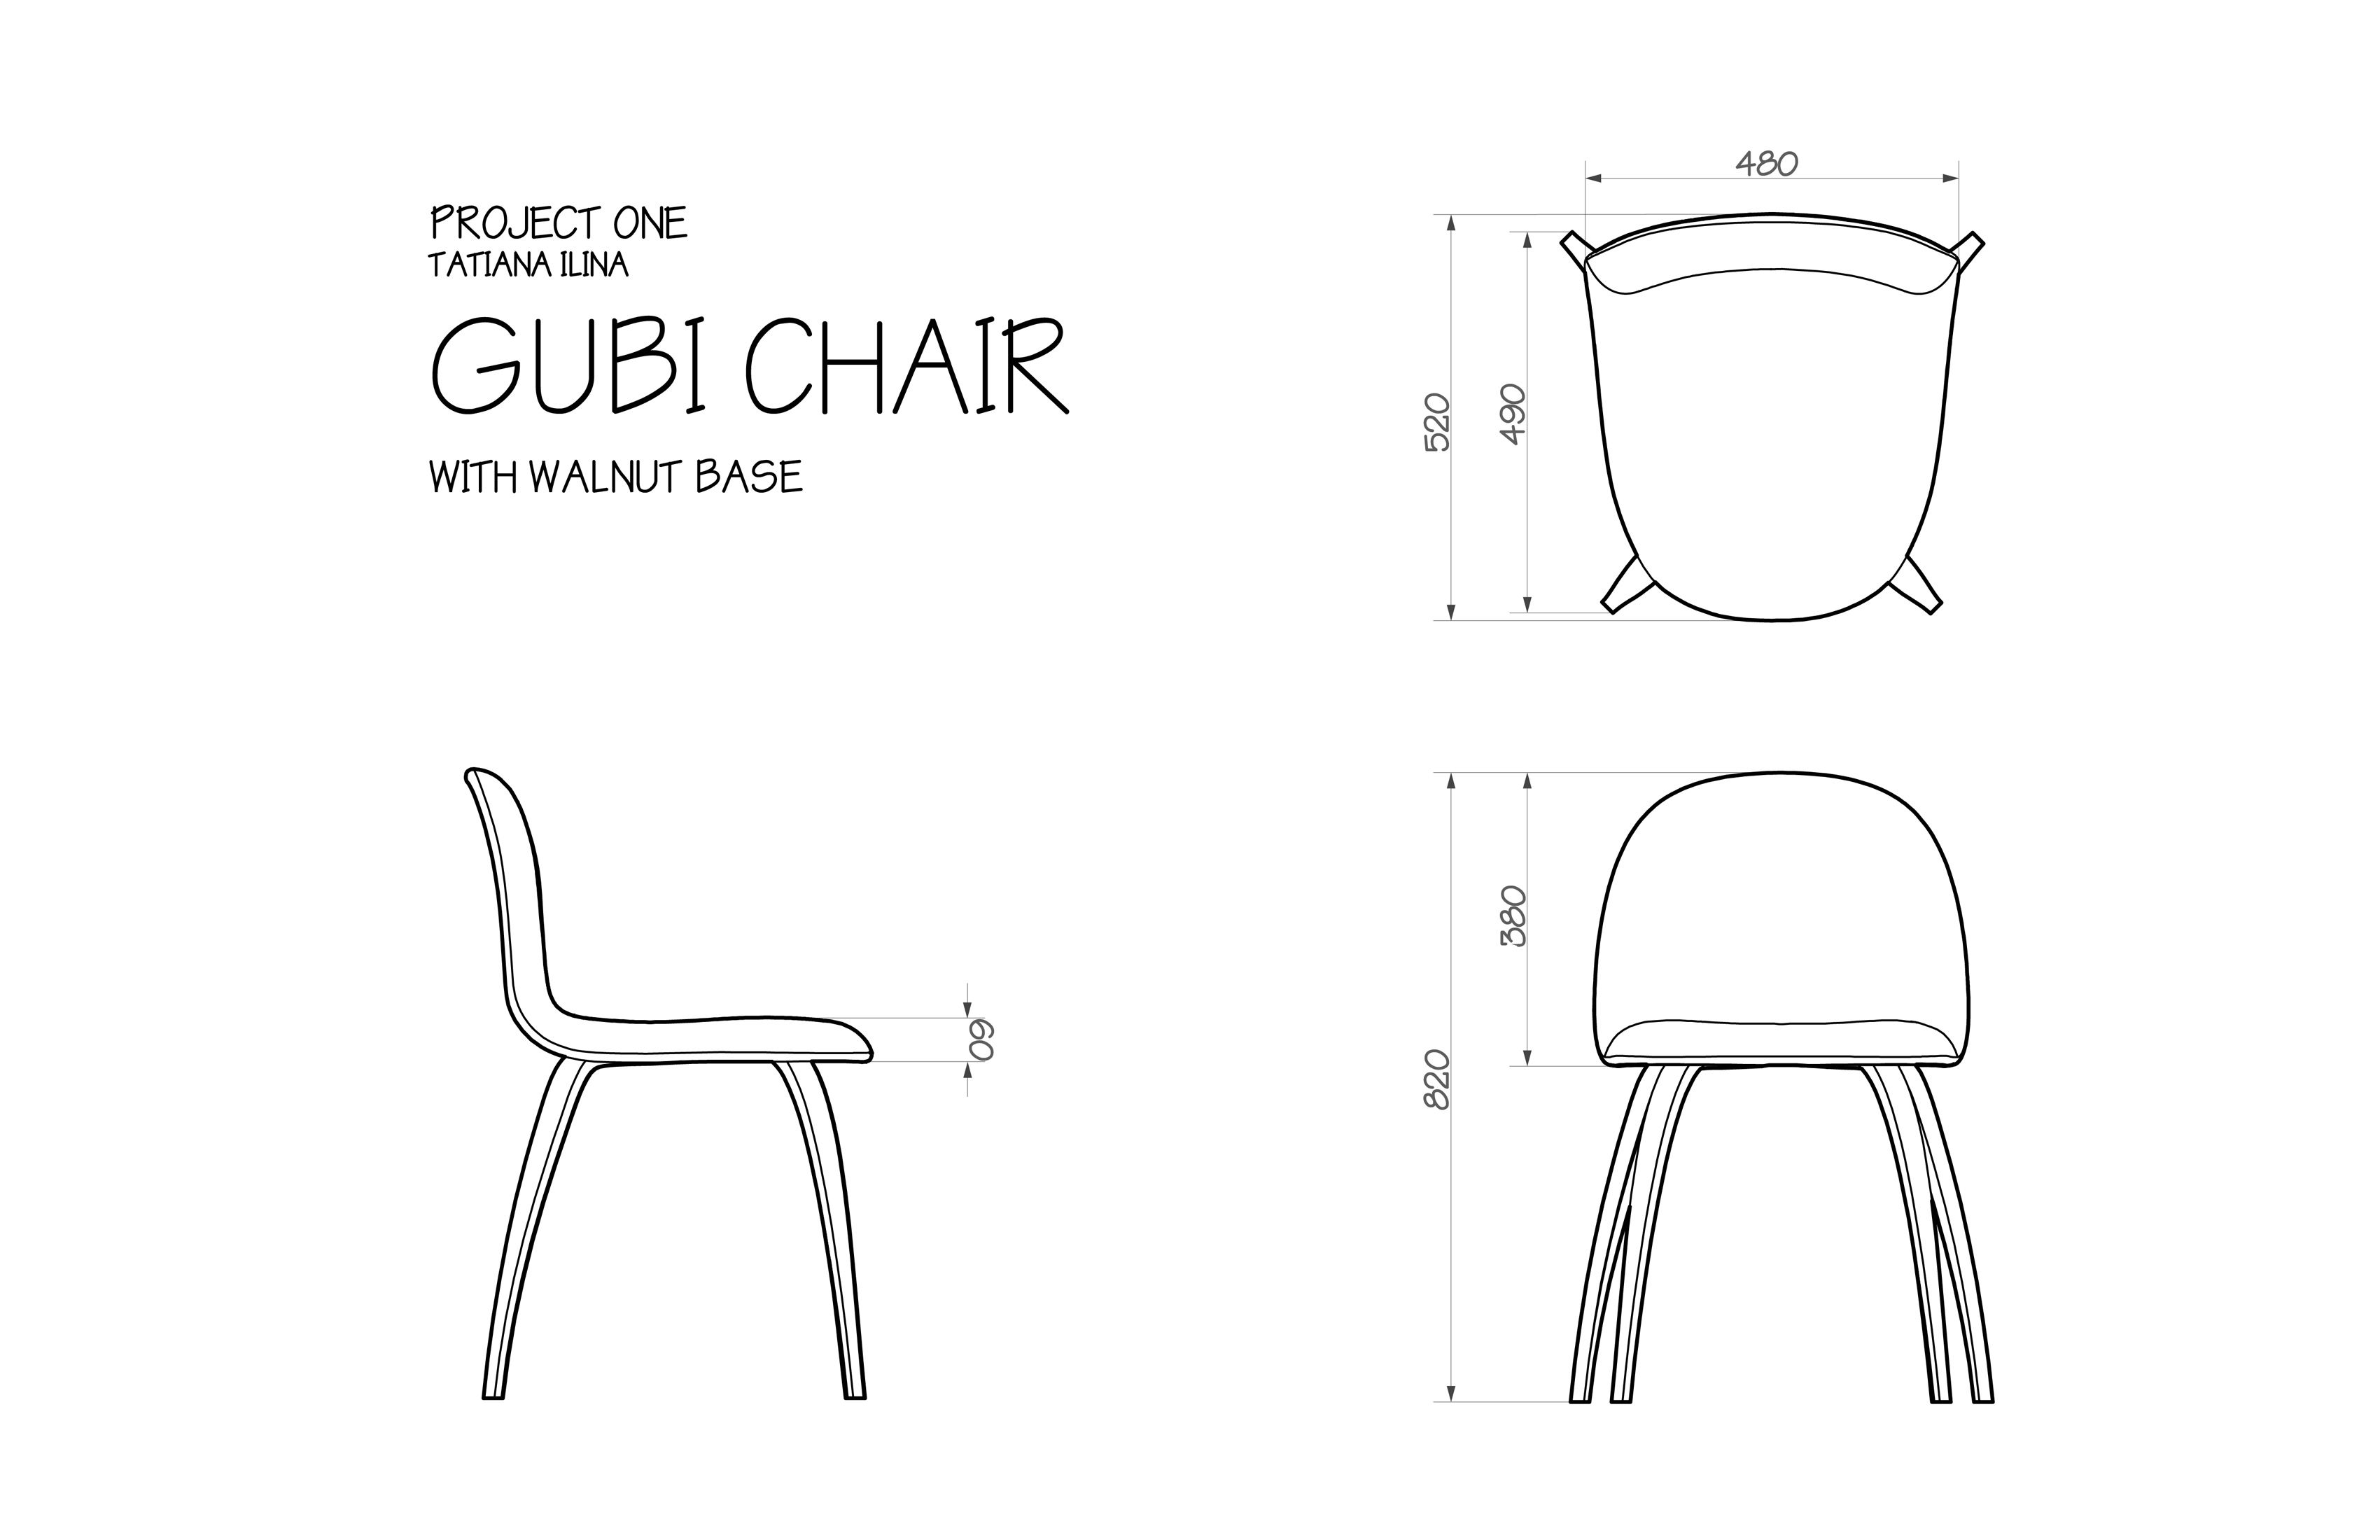 chair design solidworks desk and animal jam 11 jpg 34002200 pinterest drawings